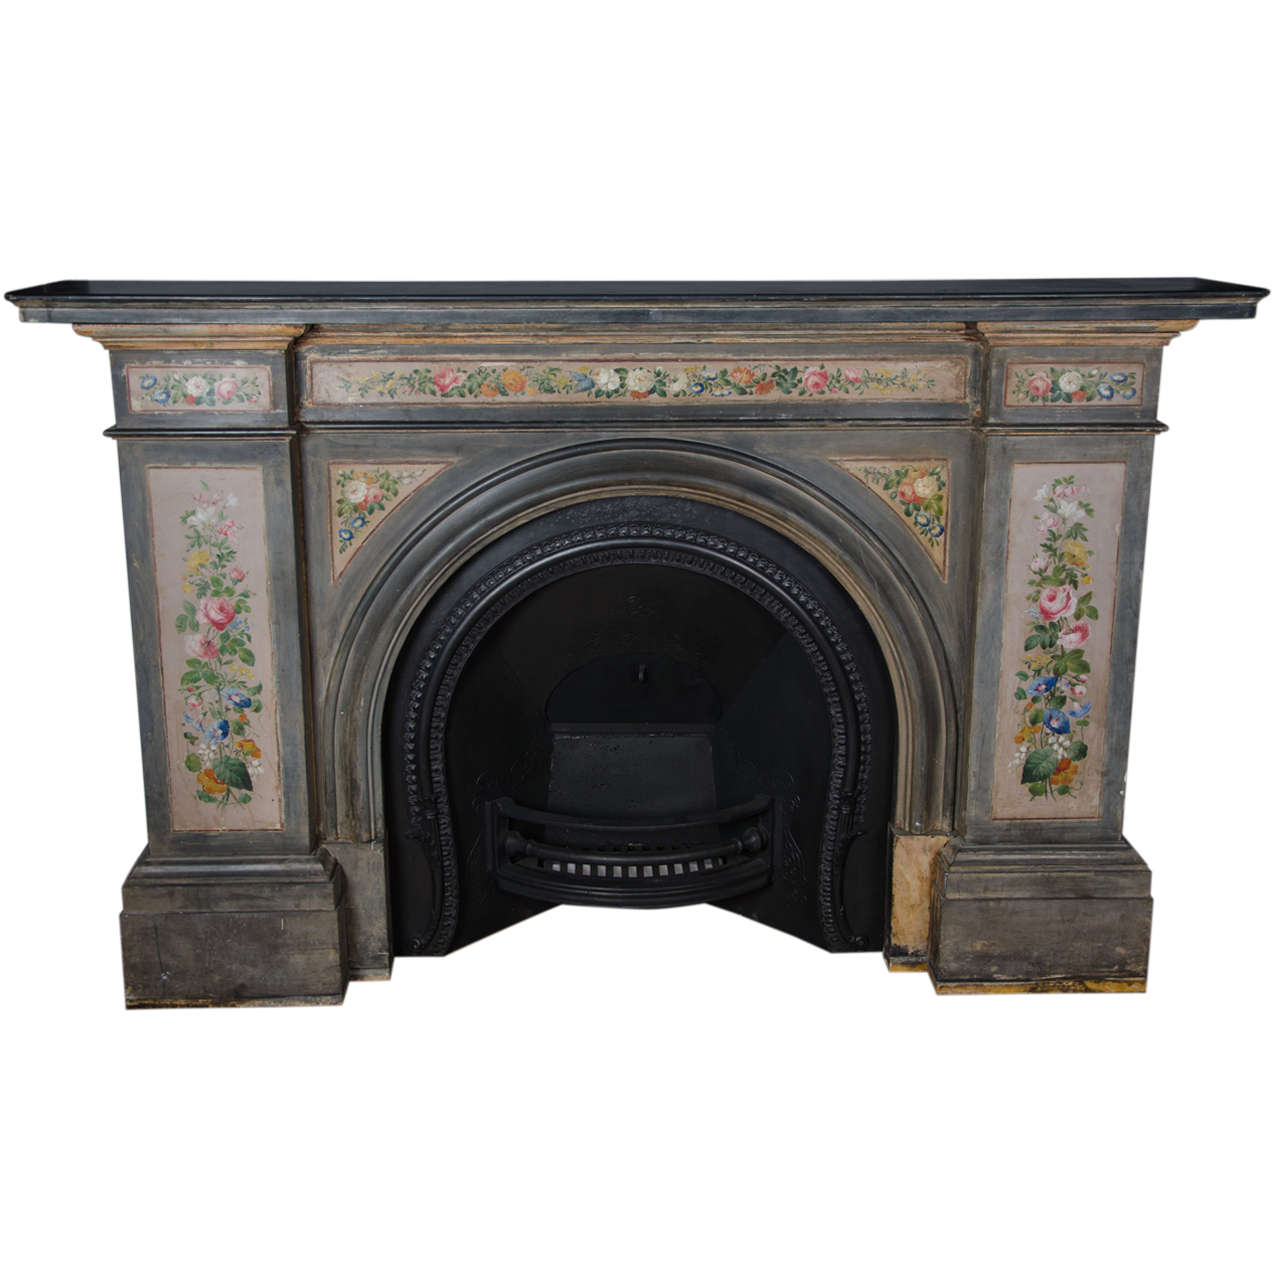 antique early victorian hand painted slate arched fireplace surround and insert at 1stdibs. Black Bedroom Furniture Sets. Home Design Ideas